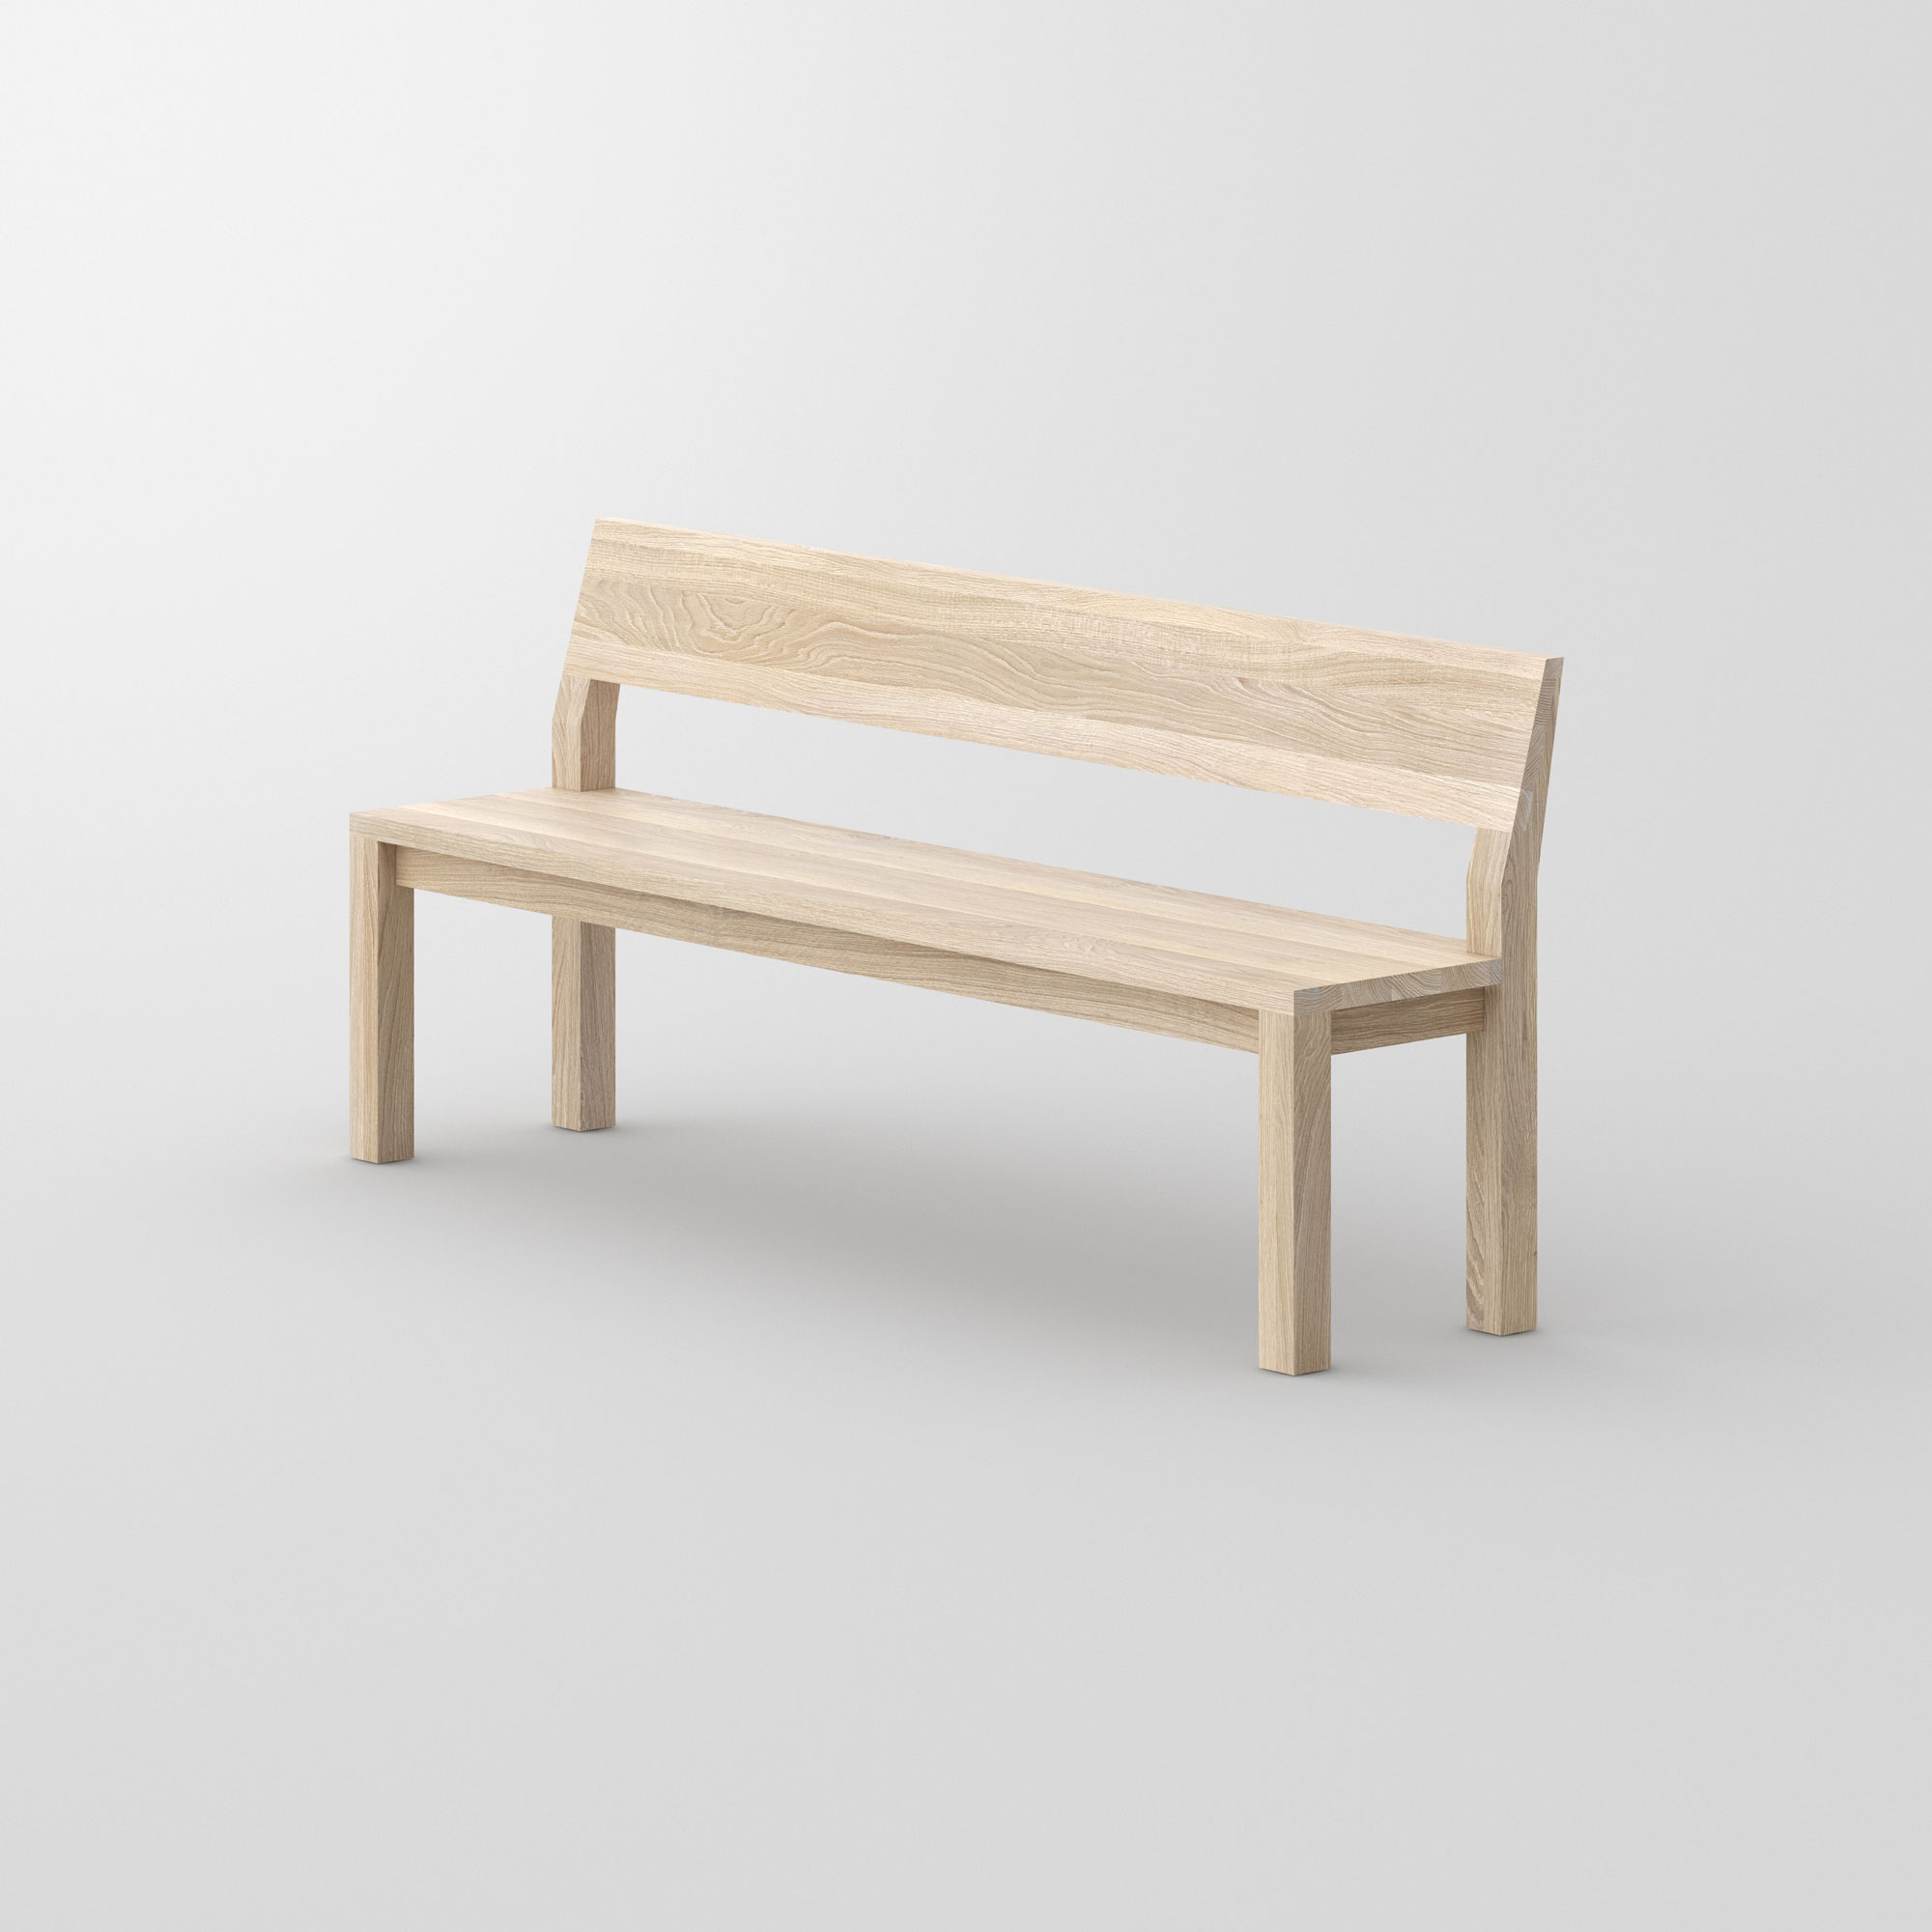 Bench with Backrest CUBUS RL cam2 custom made in solid wood by vitamin design